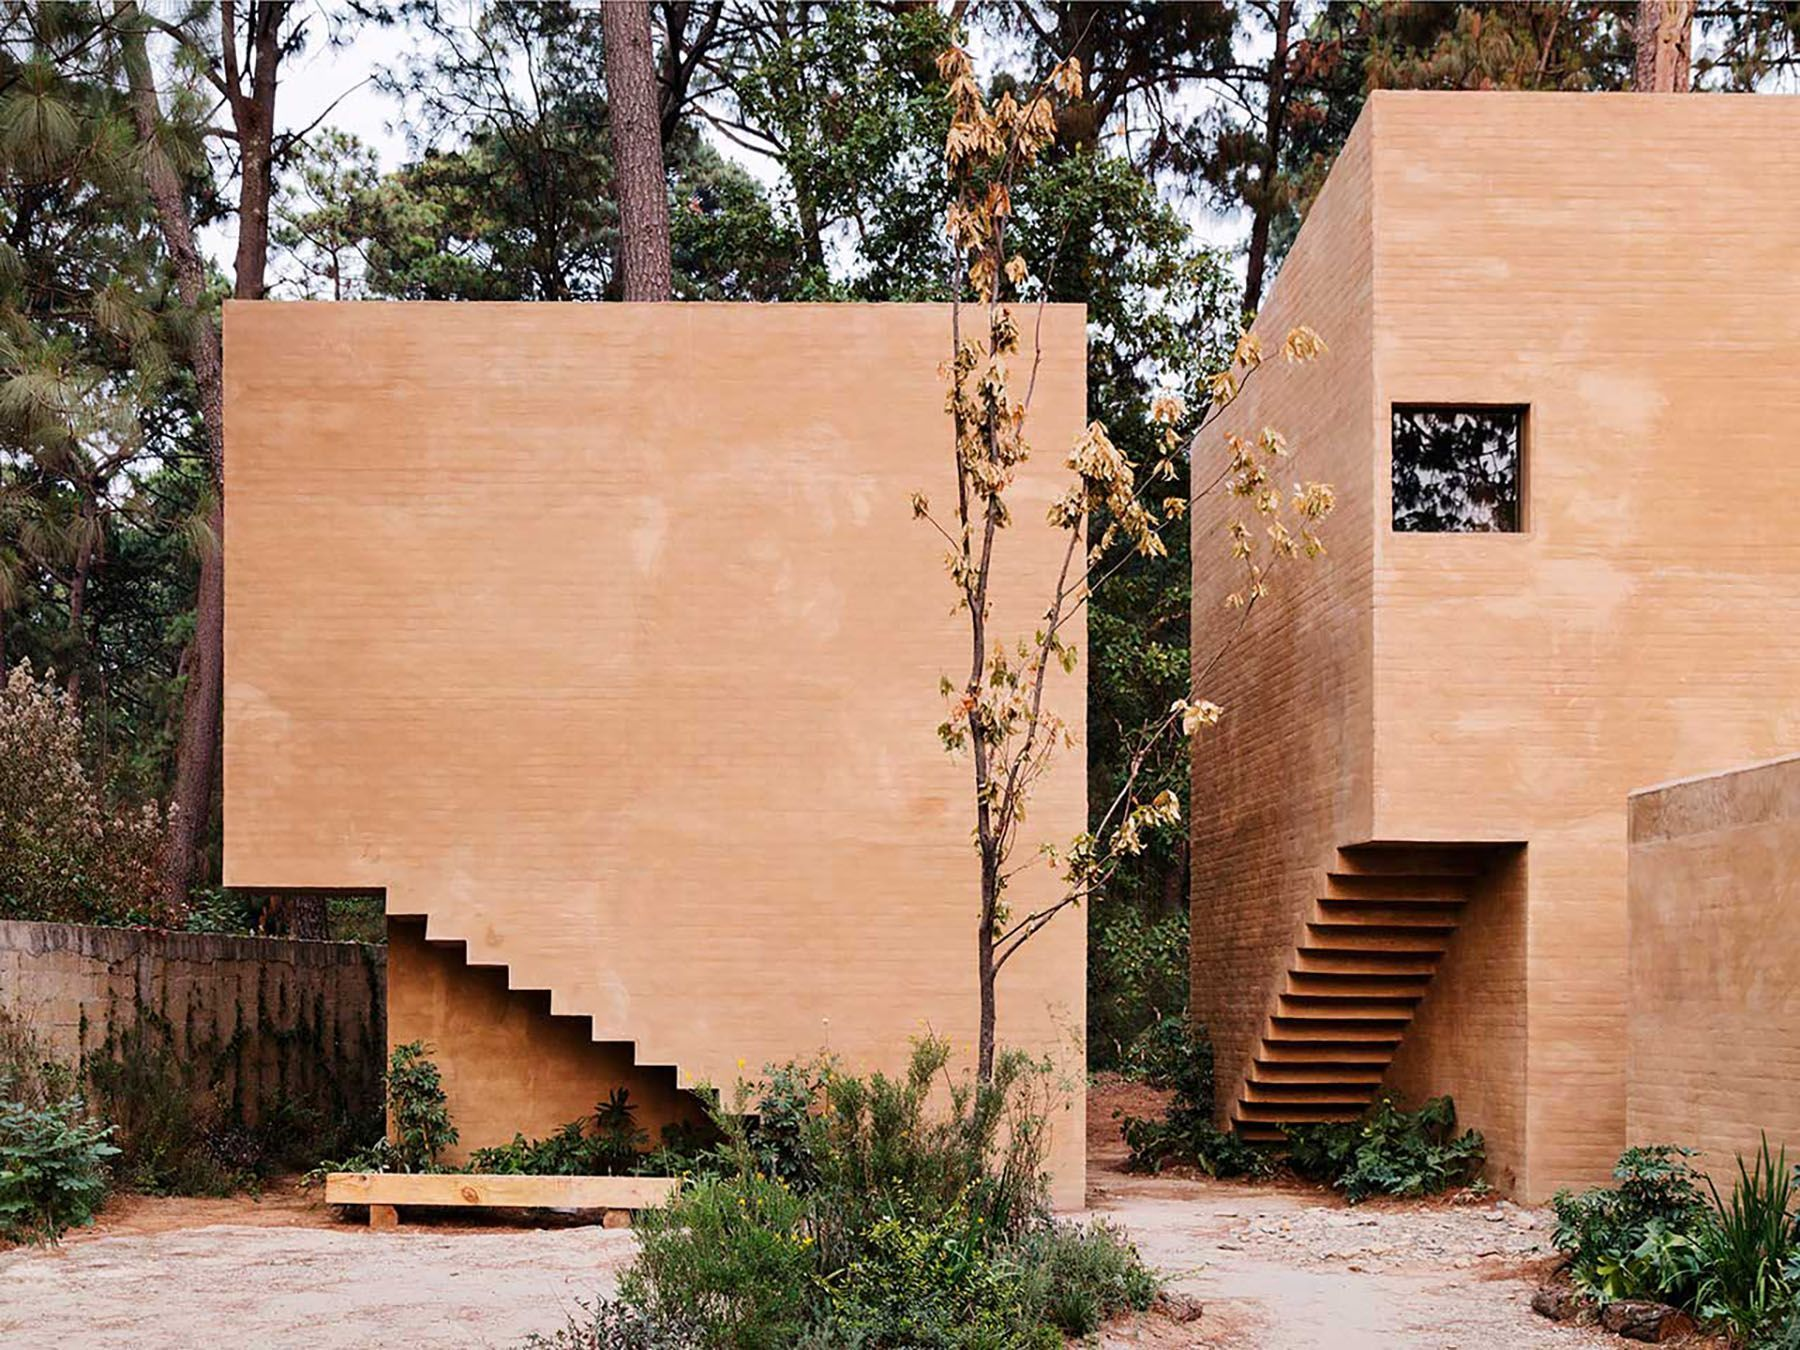 Taller Hector Barroso Designs Homes Amongst The Pines In Mexico Architecture Architecture Exterior Valle De Bravo